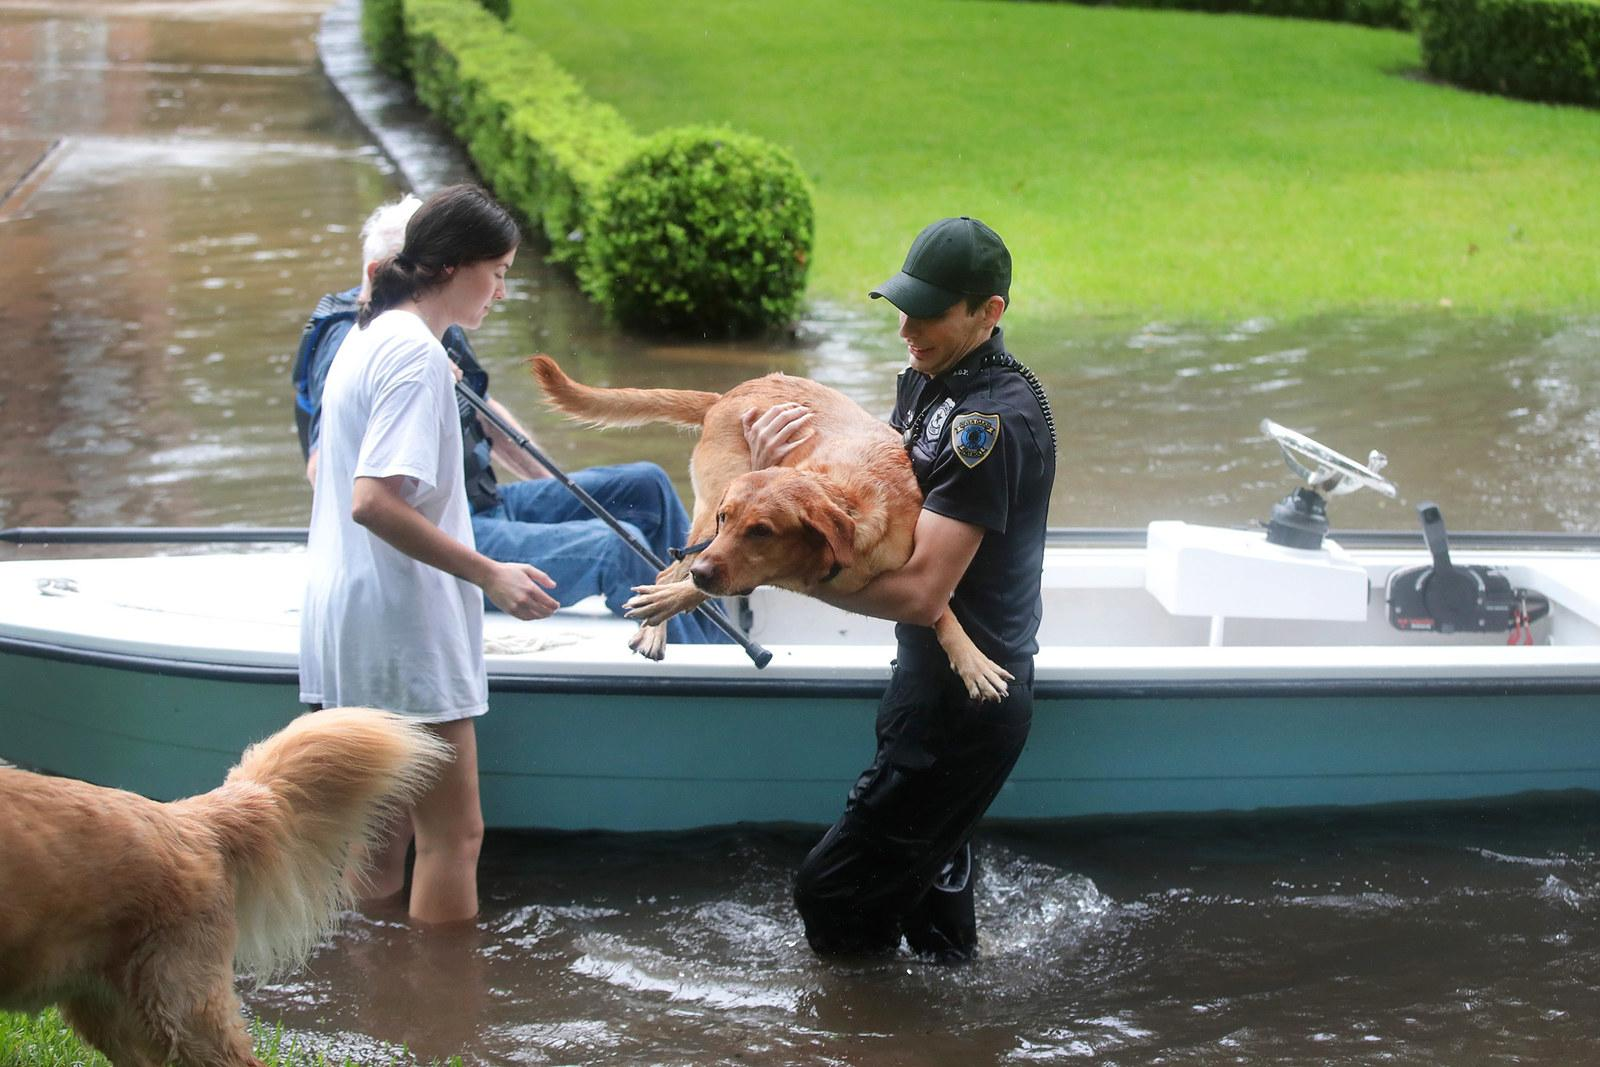 Volunteers and officers from the neighborhood security patrol help to rescue residents and their dogs in the upscale River Oaks neighborhood on Aug. 27 in Houston.